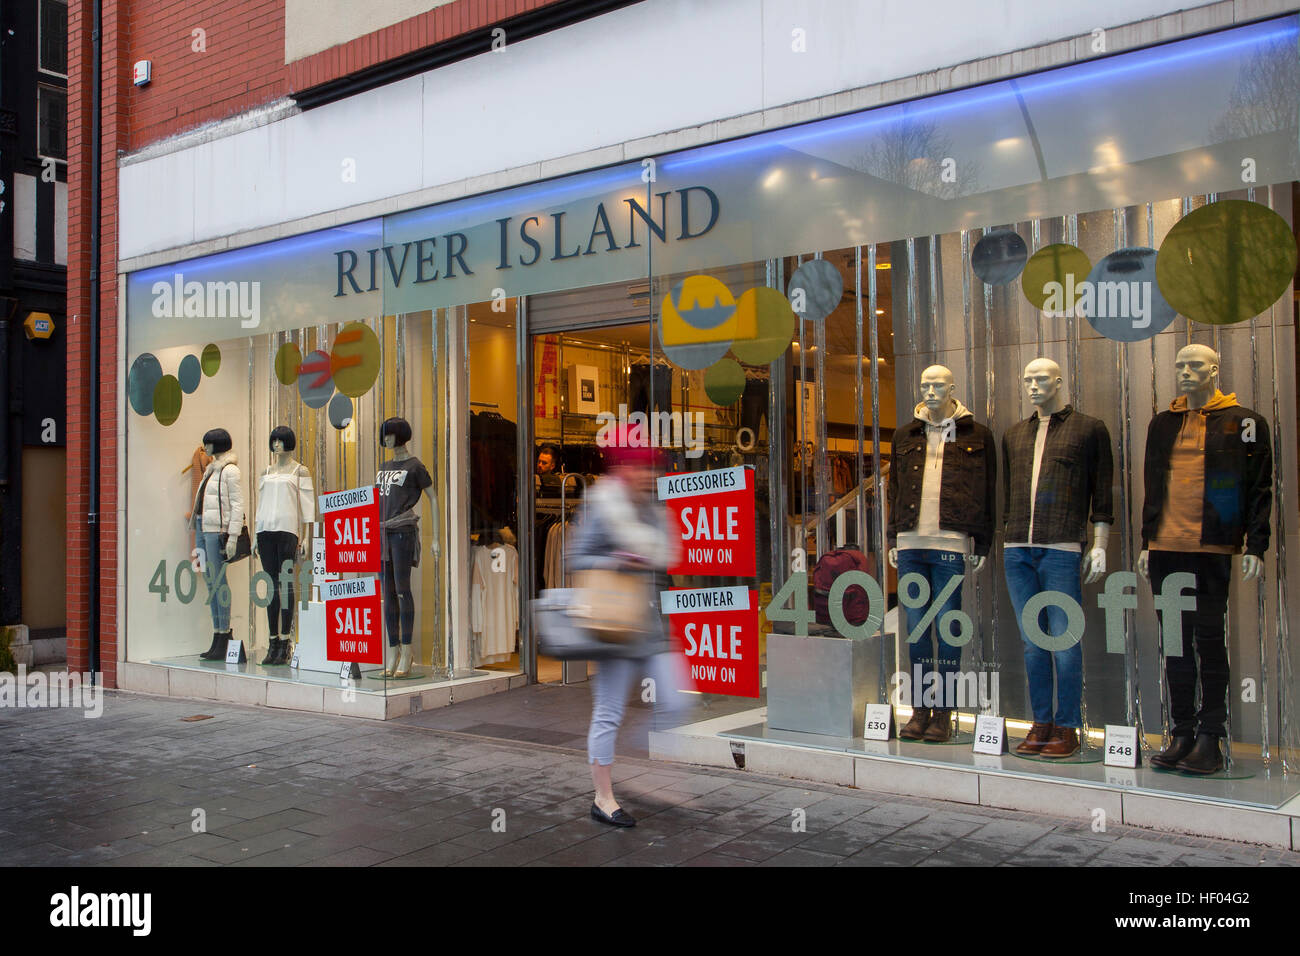 Southport, Merseyside, UK. 24th December, 2016. Pre Boxing Day Sales.   Stores in the town are now displaying tentative Stock Photo